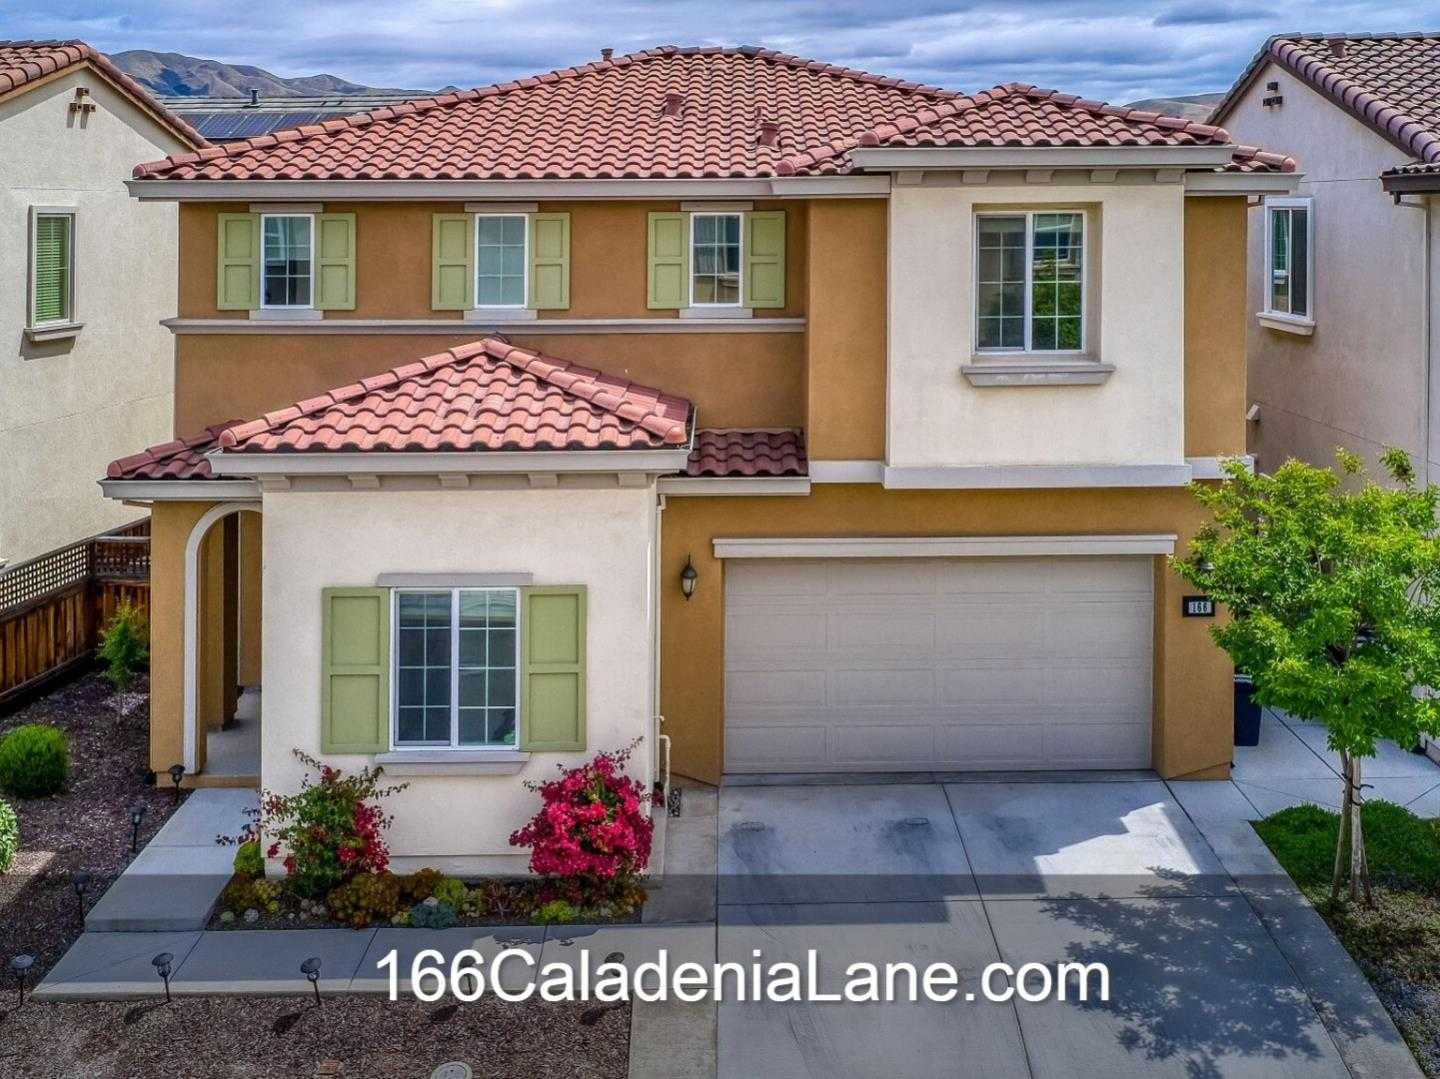 $1,650,000 - 4Br/3Ba -  for Sale in Milpitas